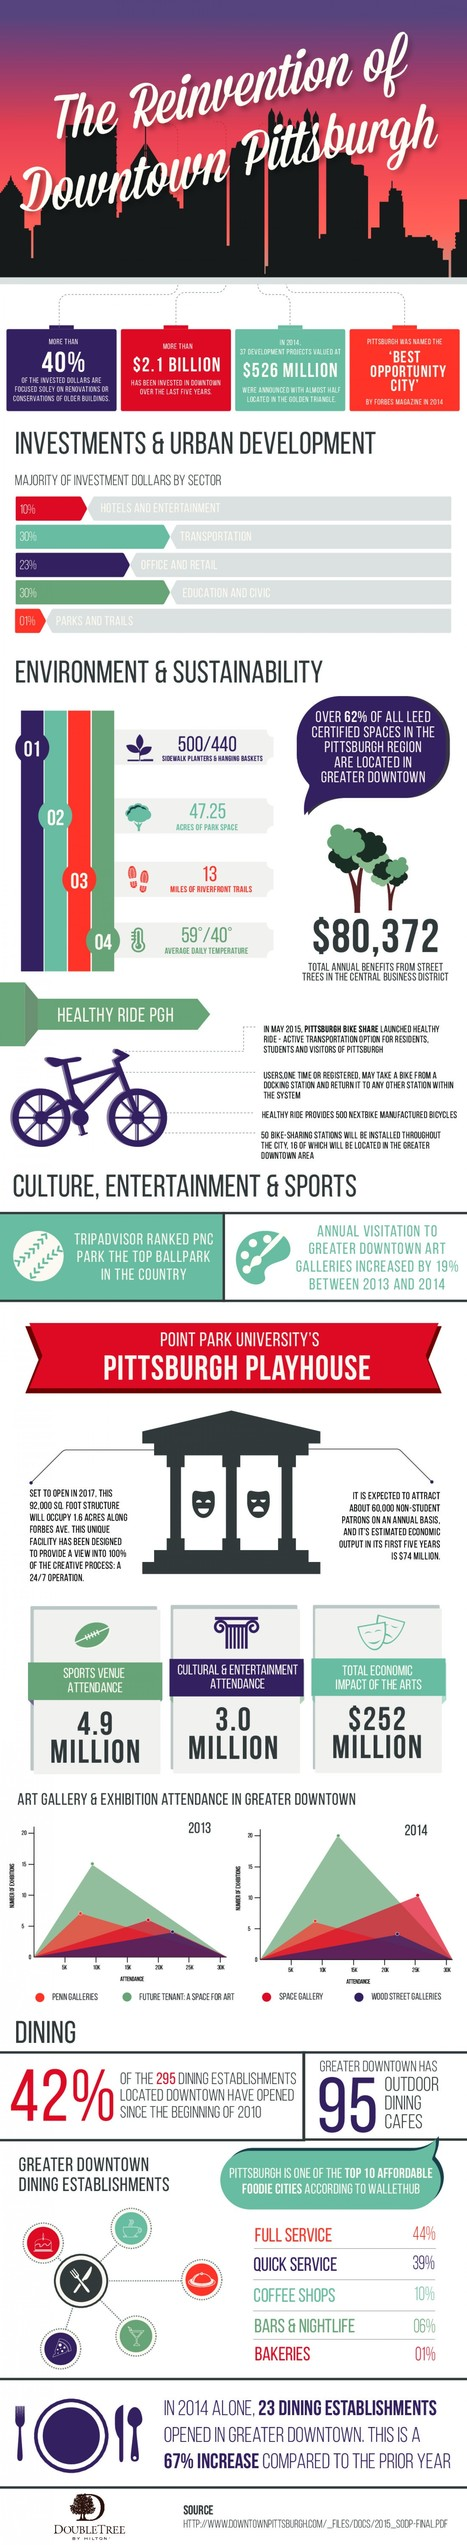 The Reinvention of Downtown Pittsburgh | DoubleTree Pittsburgh Downtown | Scoop.it